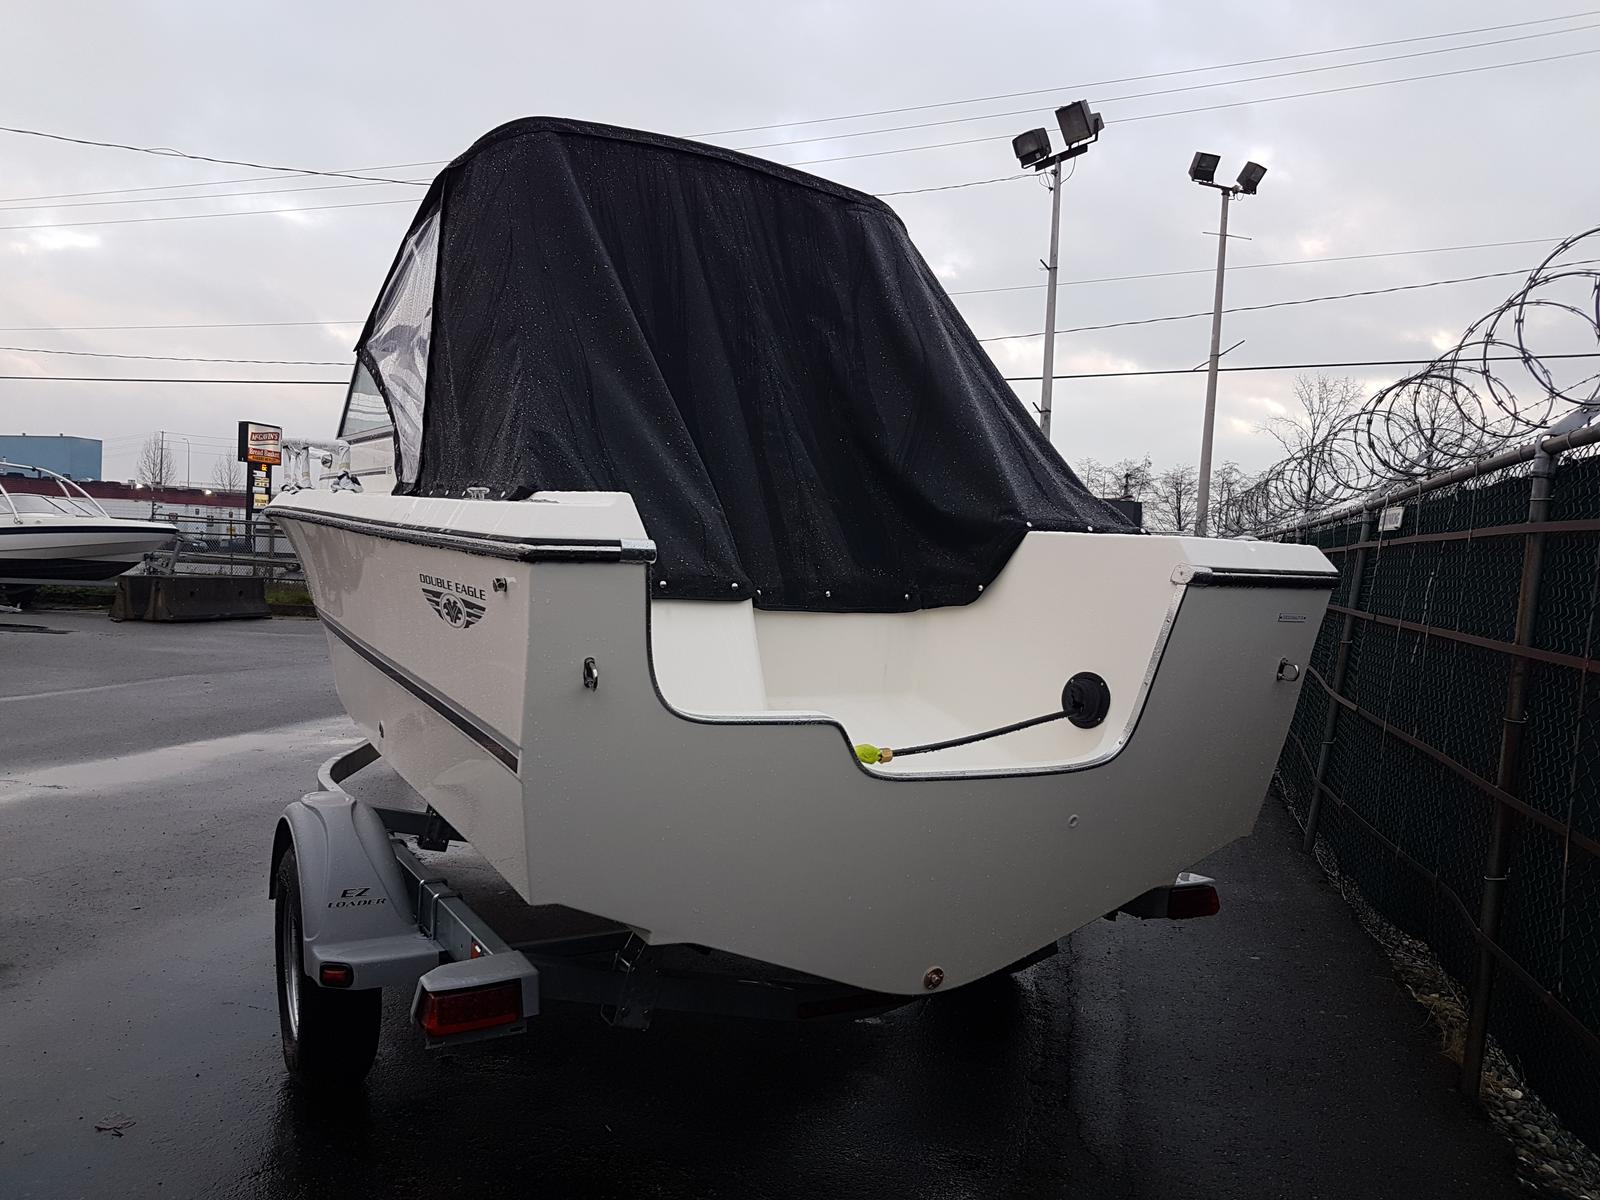 2018 Double Eagle 185 Cuddy Cabin For Sale In Langley Bc Marine As Well Boat Trailers On Trailer Wiring 4